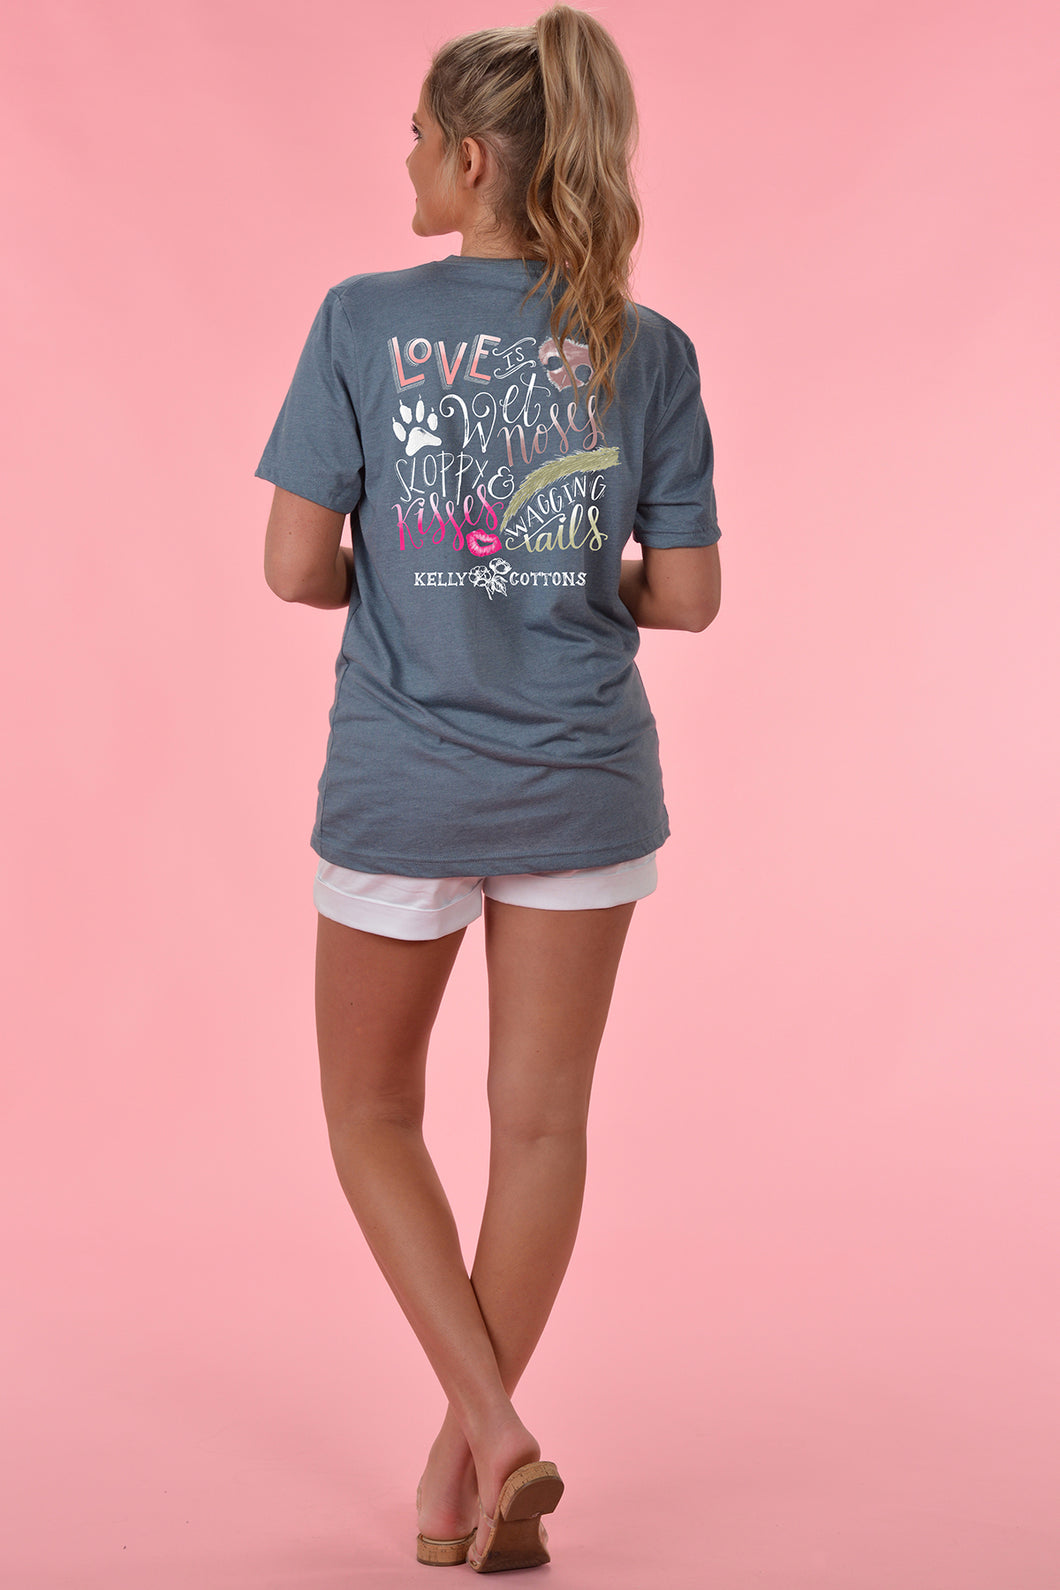 Love Is Wet Noses V-Neck - Kelly Cottons